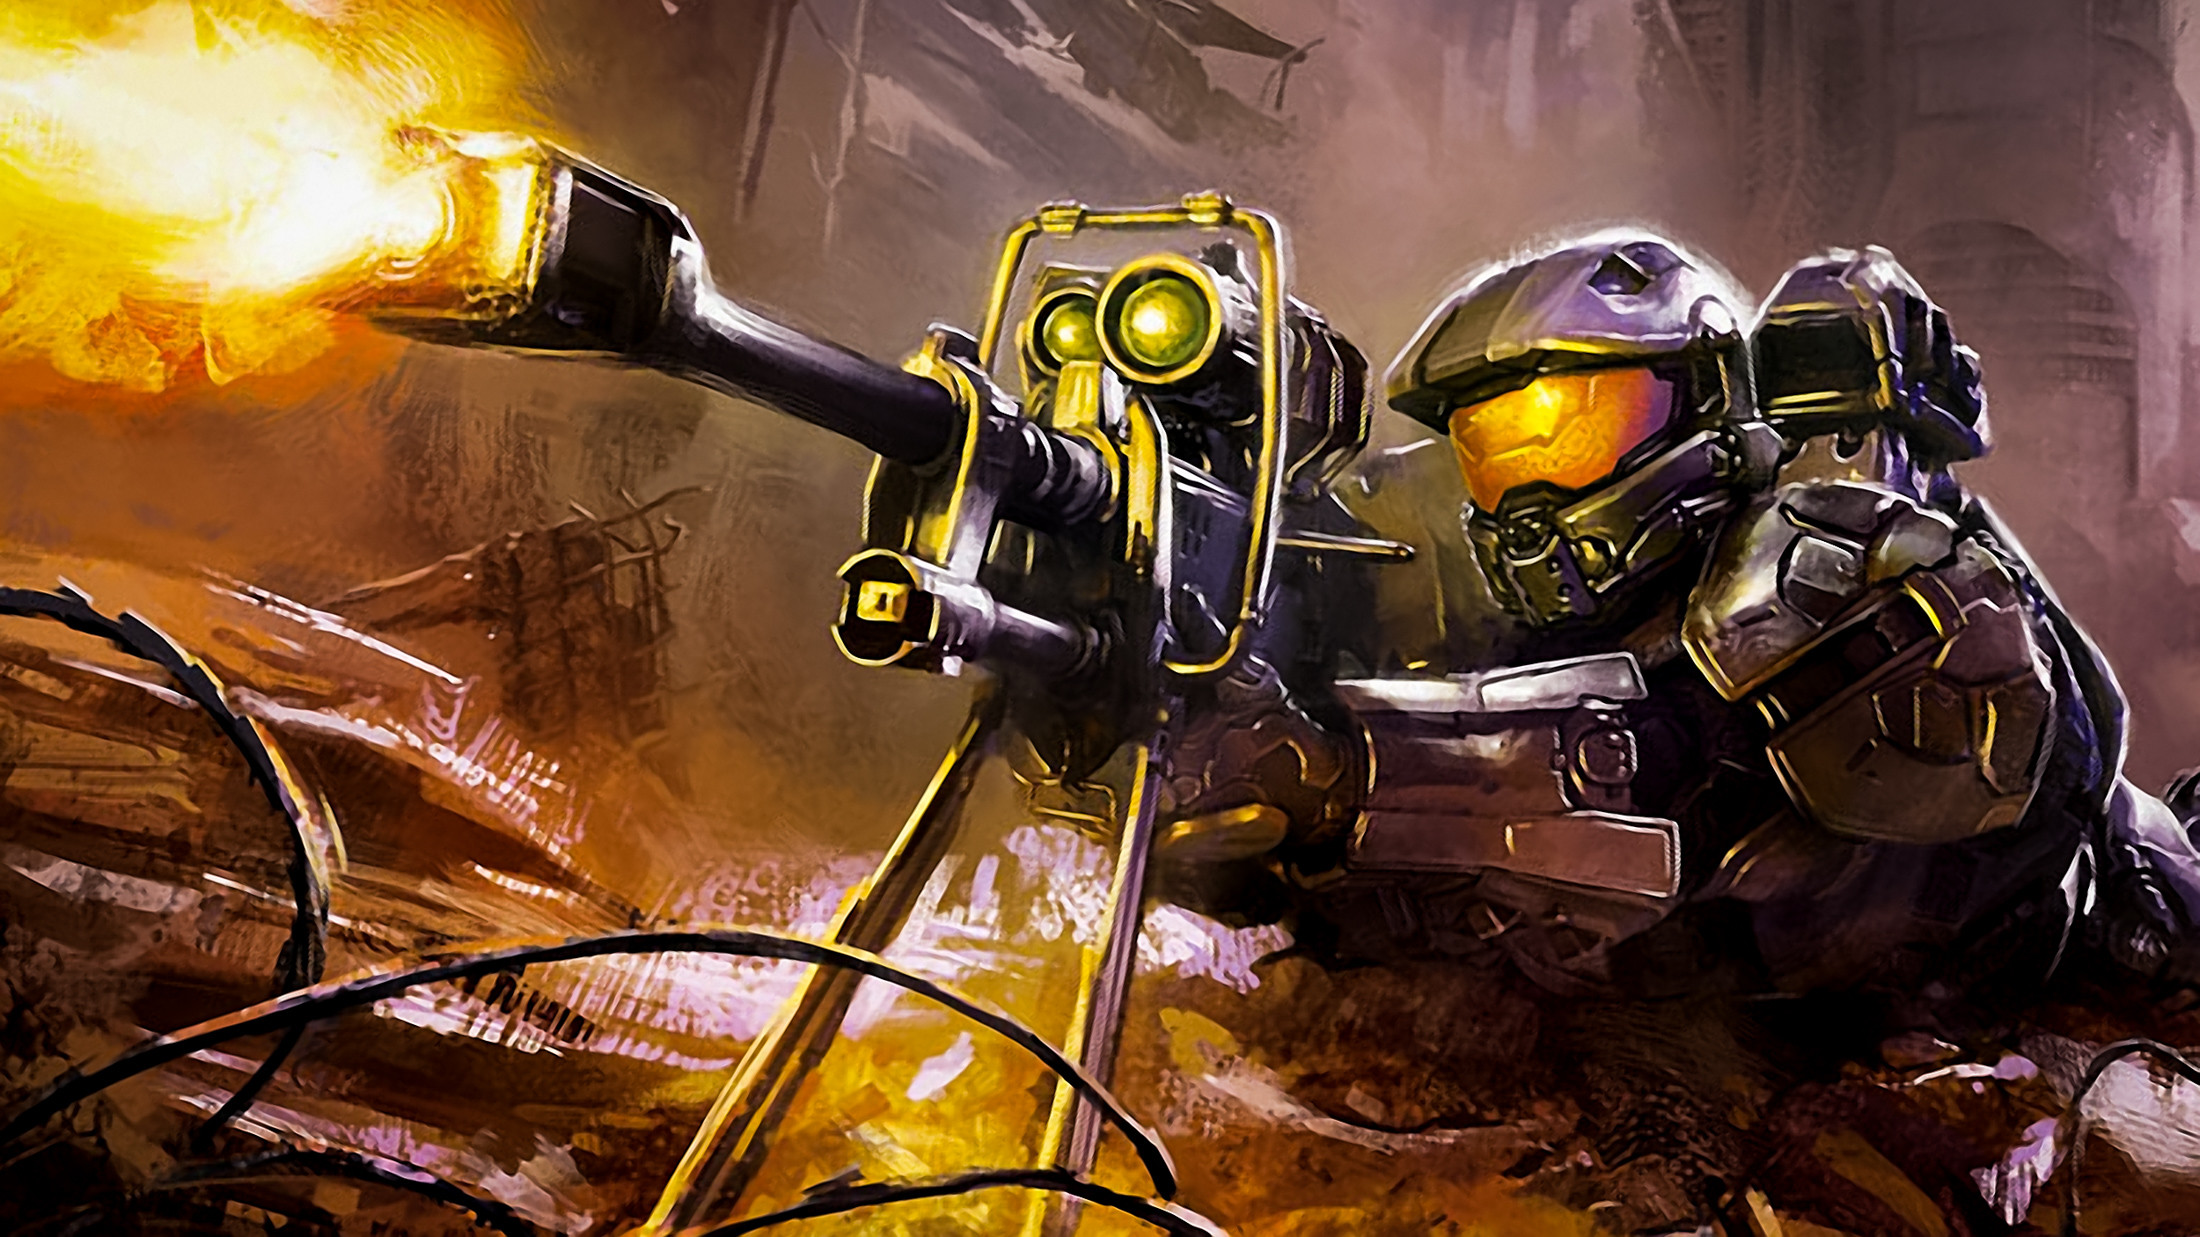 2200x1237 Halo Master Chief HD Background Wallpapers Amazing 1600×900 Halo 4  Wallpapers HD (51 Wallpapers) | Adorable Wallpapers | Desktop | Pinterest |  Wallpaper and ...